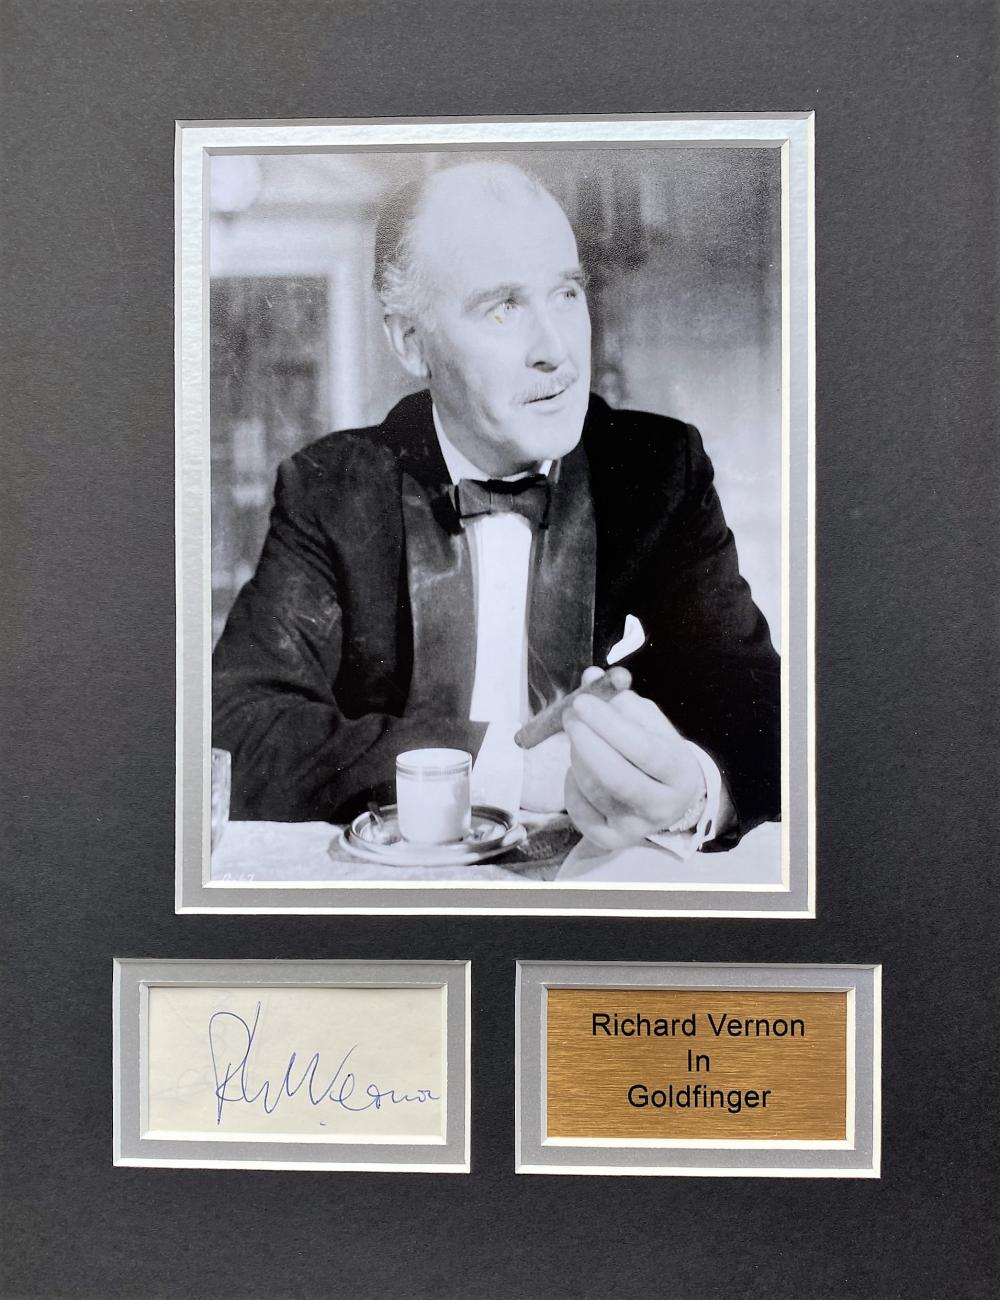 Richard Vernon 13x10 matted signature piece includes signed album page and black and white photo.